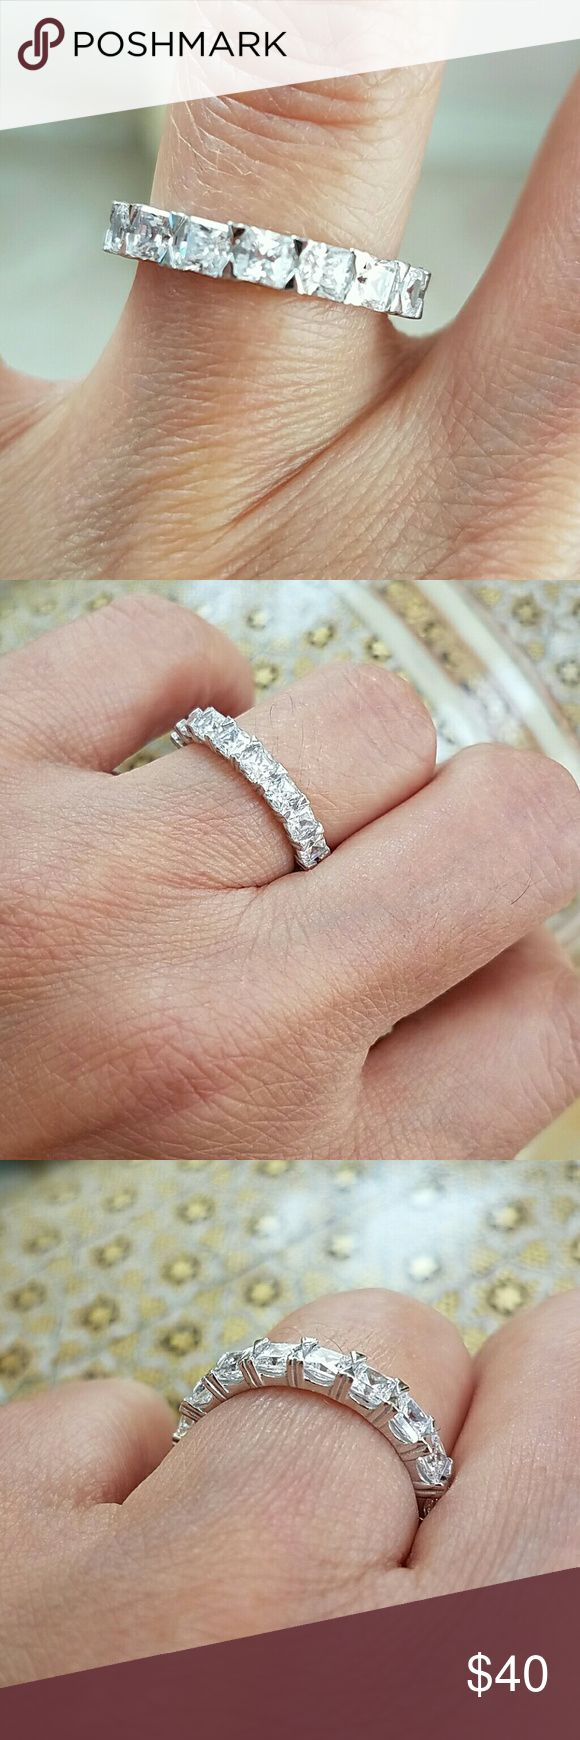 14k gold plated Eternity wedding band size 7 Invisible princess cut CZ stones size 7 Jewelry Rings